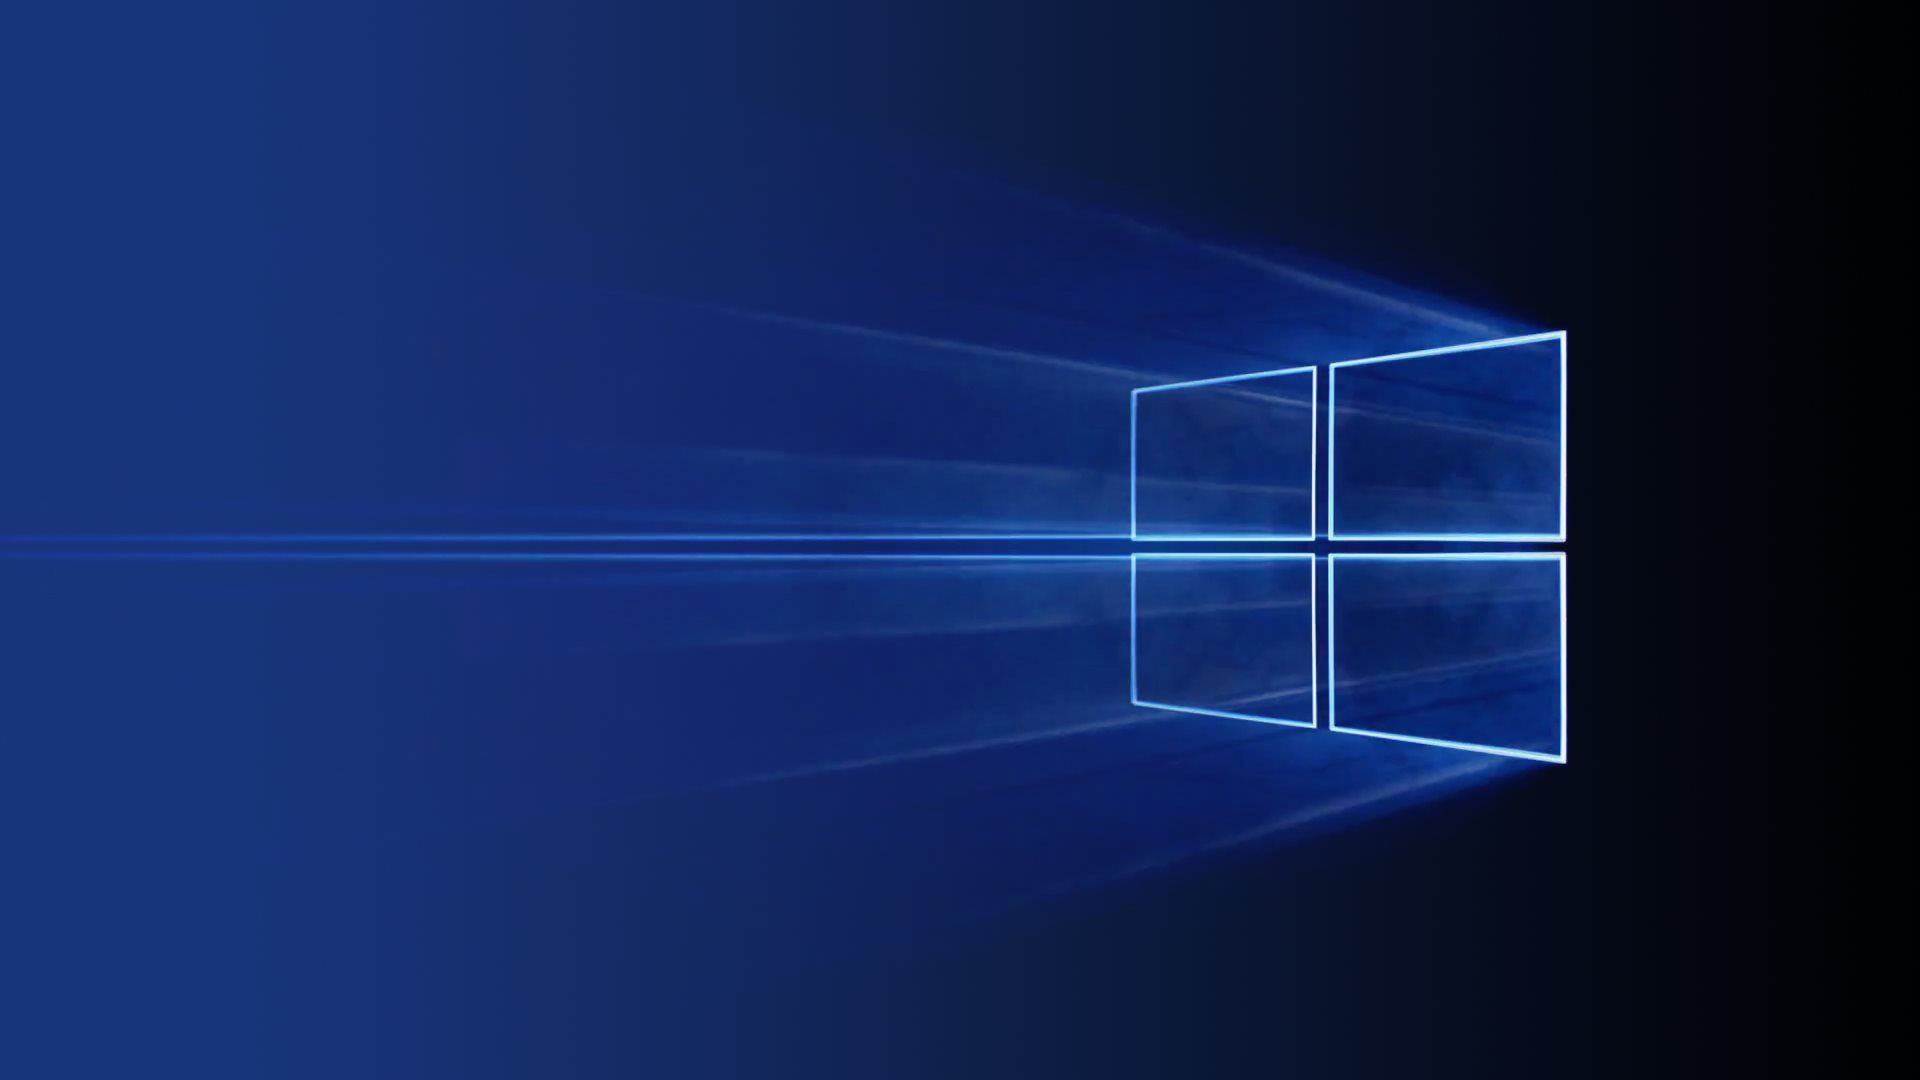 Microsoft wallpapers hd desktop backgrounds images and for Latest windows for pc